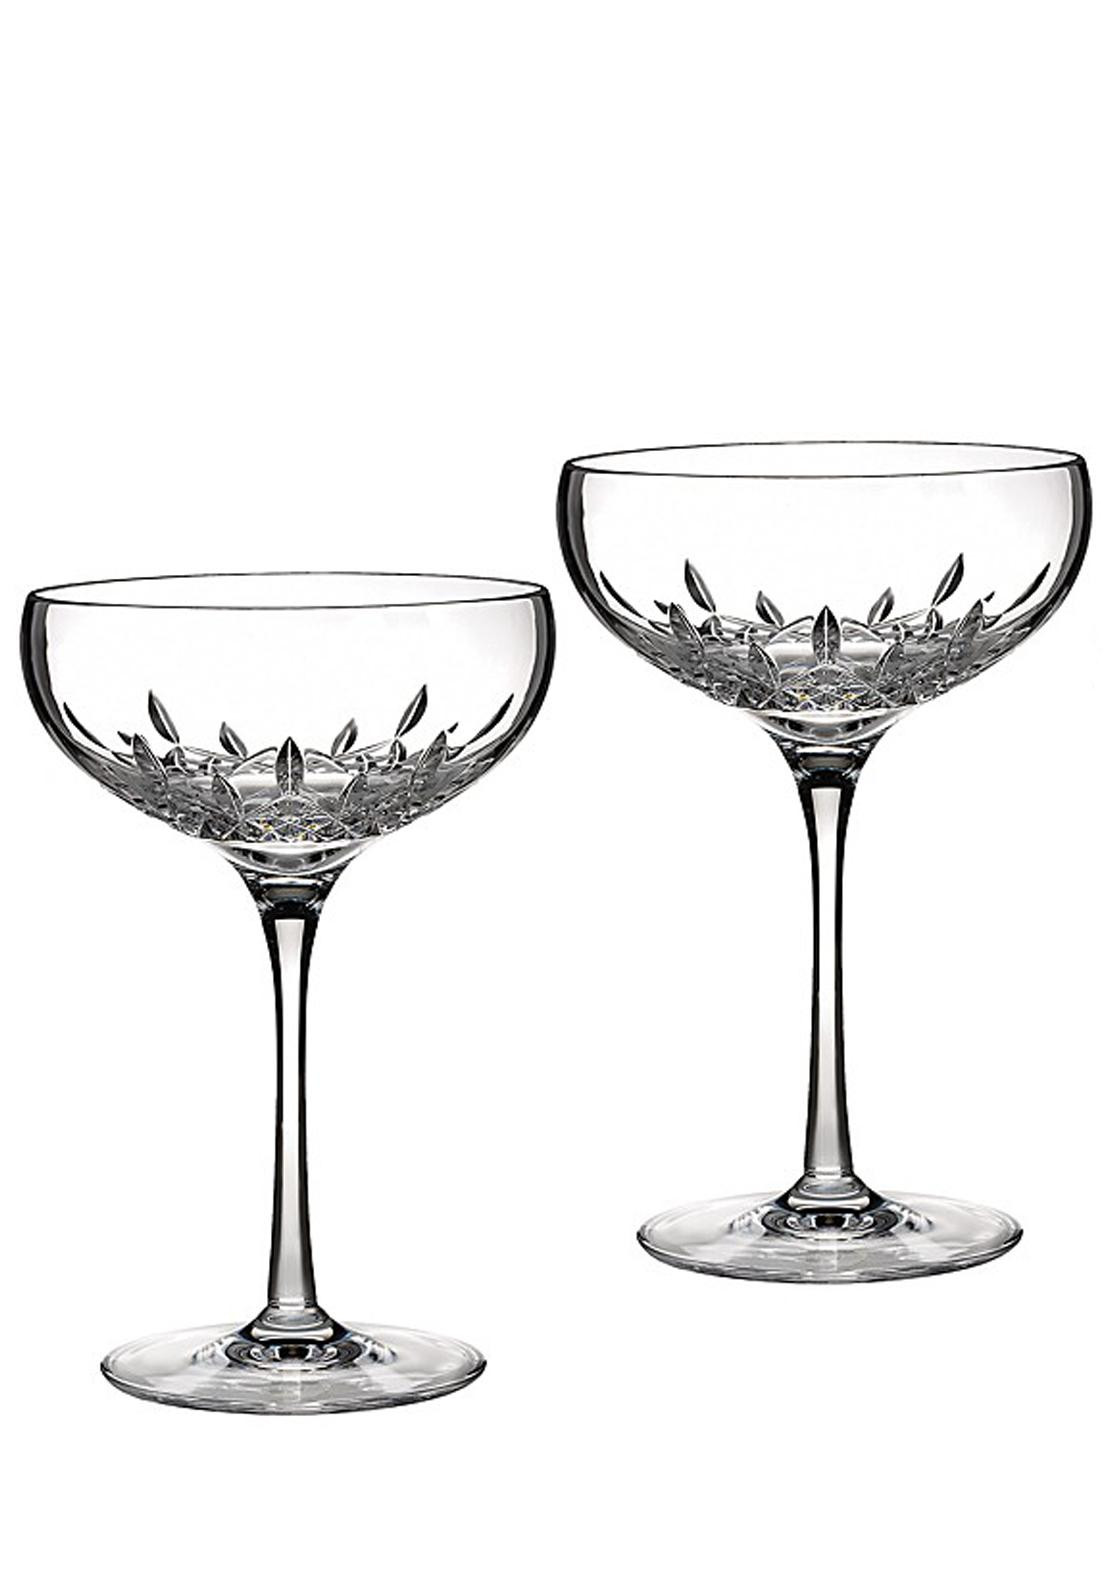 Waterford Crystal Lismore Essence Anniversary Champagne Saucer, Pair